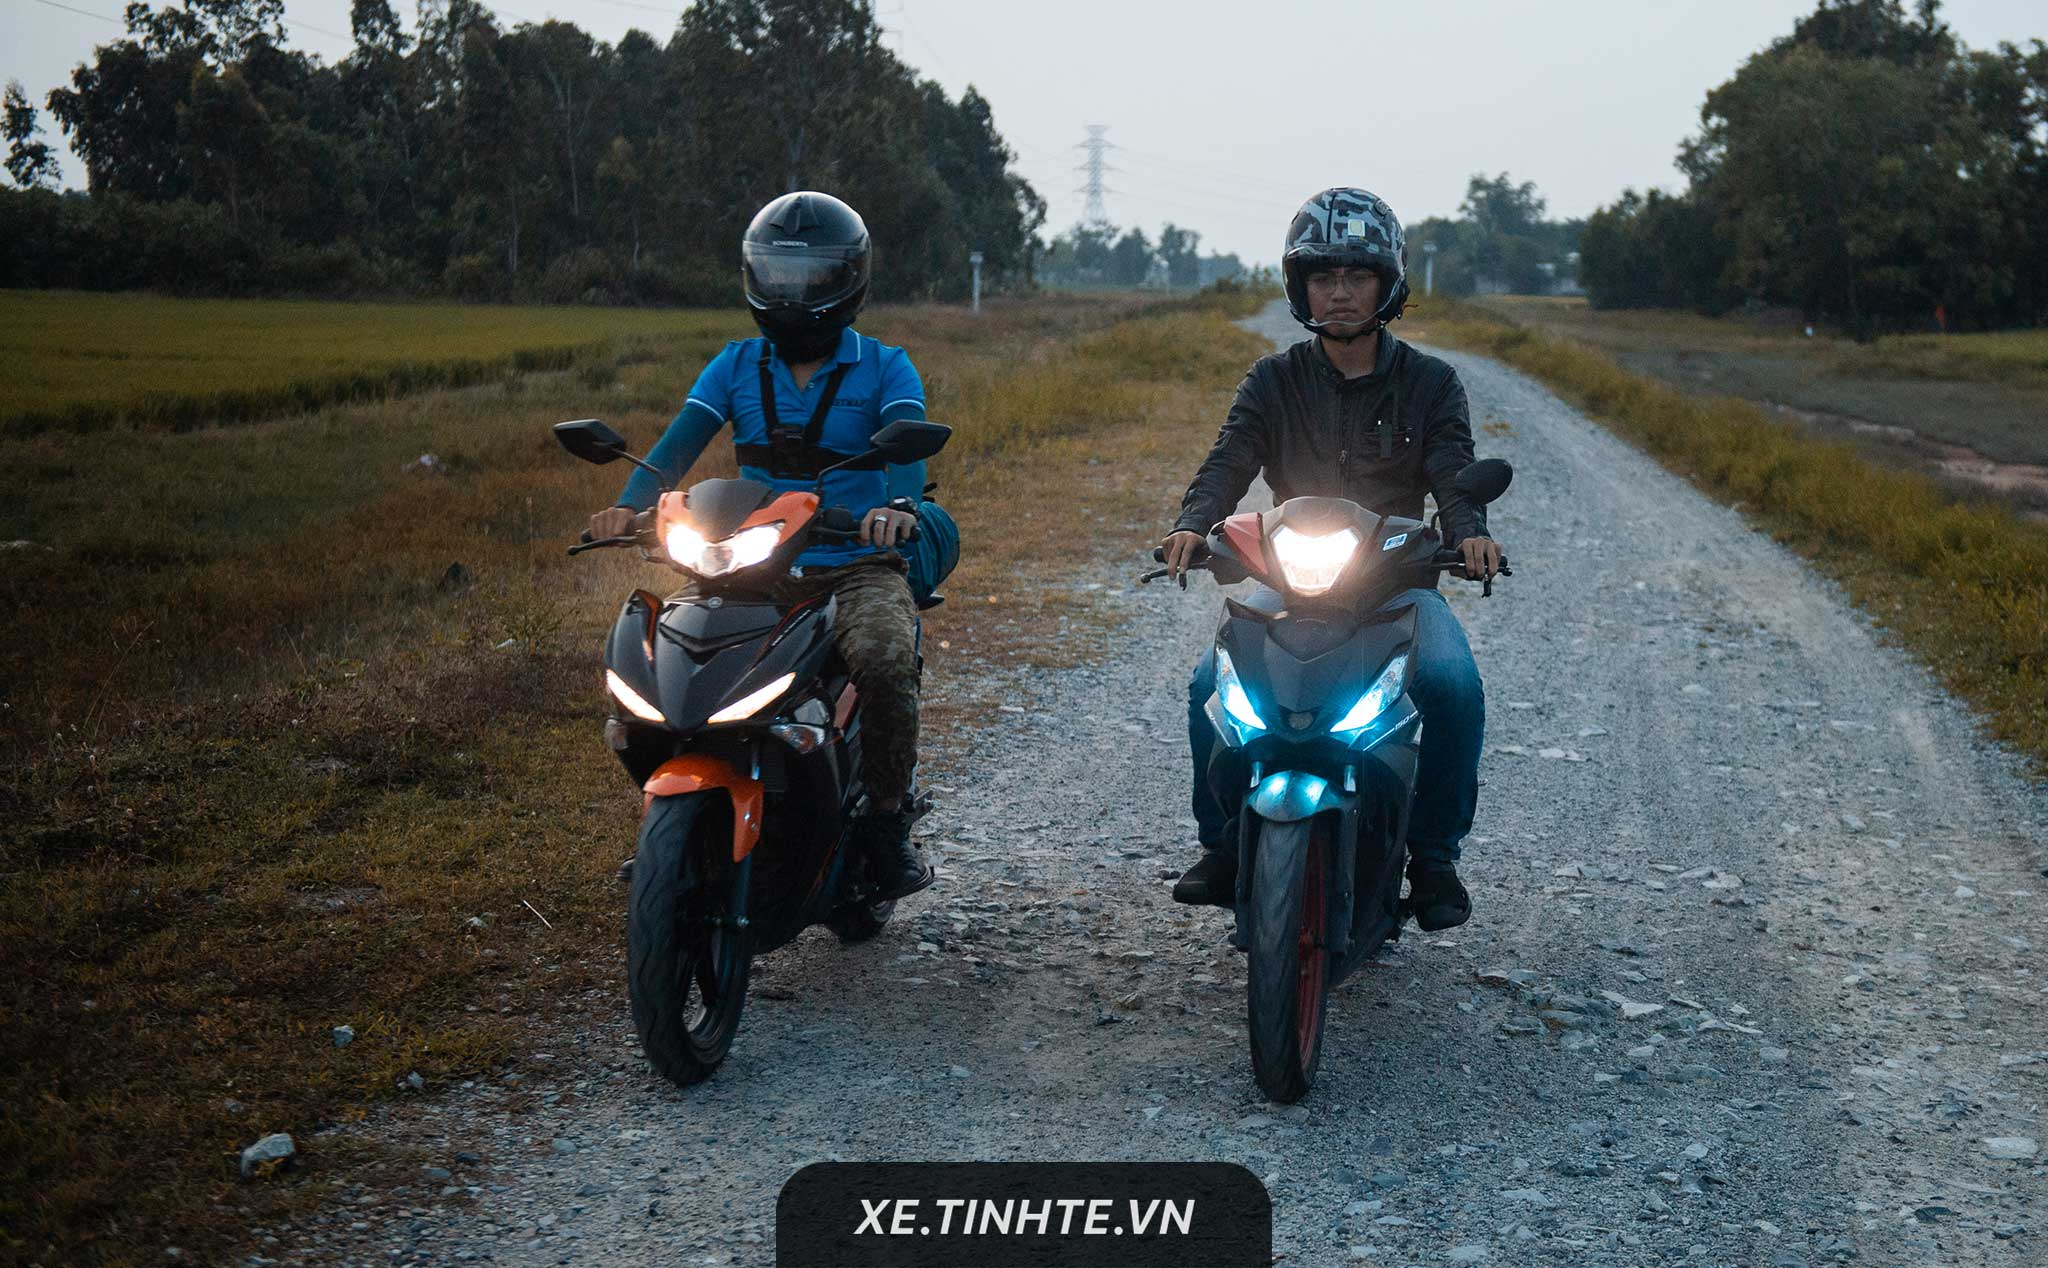 [Game] Share photos with Honda Winner or Yamaha Exciter